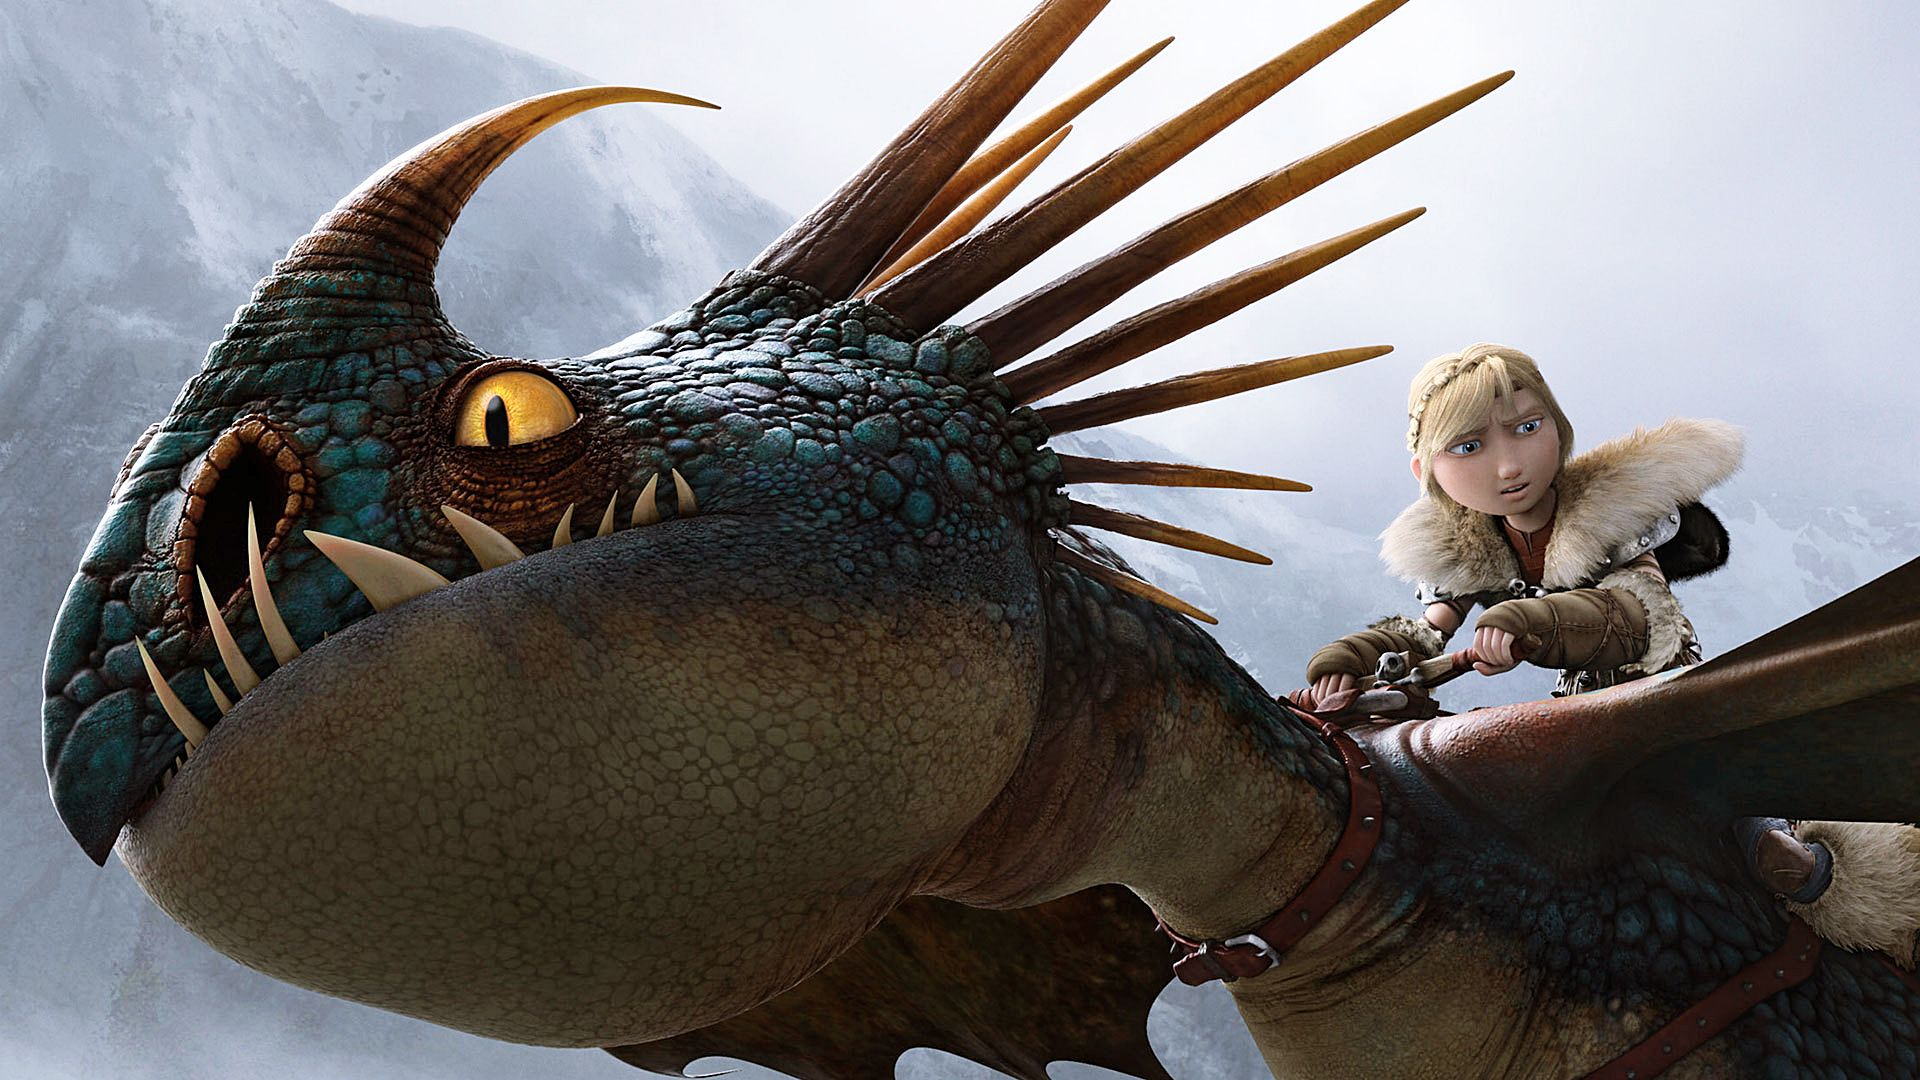 How To Train Your Dragon Wallpaper 1920x1080